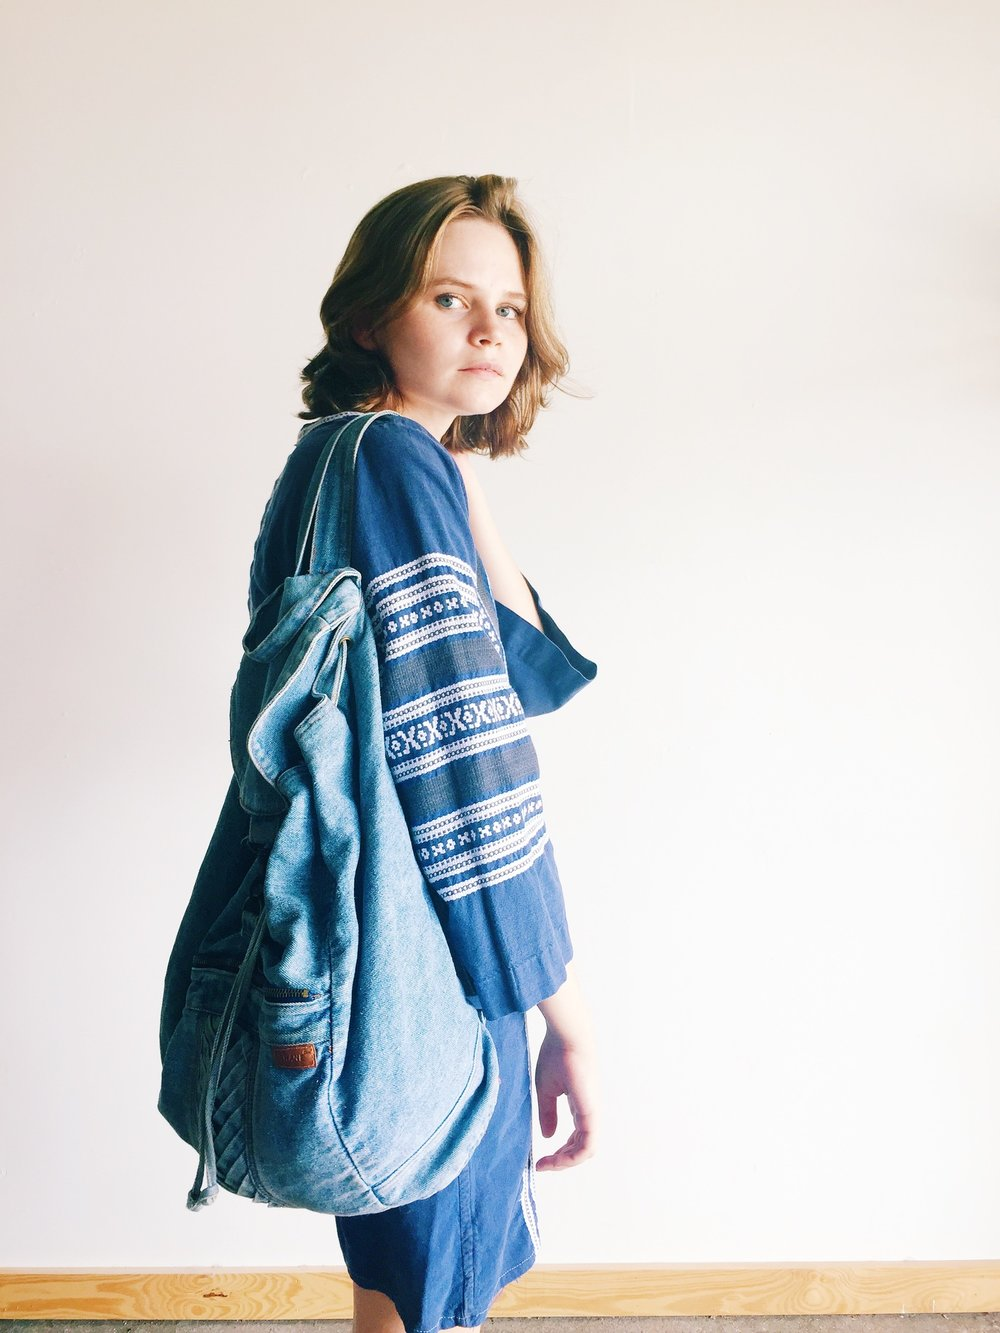 wonaponatime-vintage-lookbook-blue-bag-top